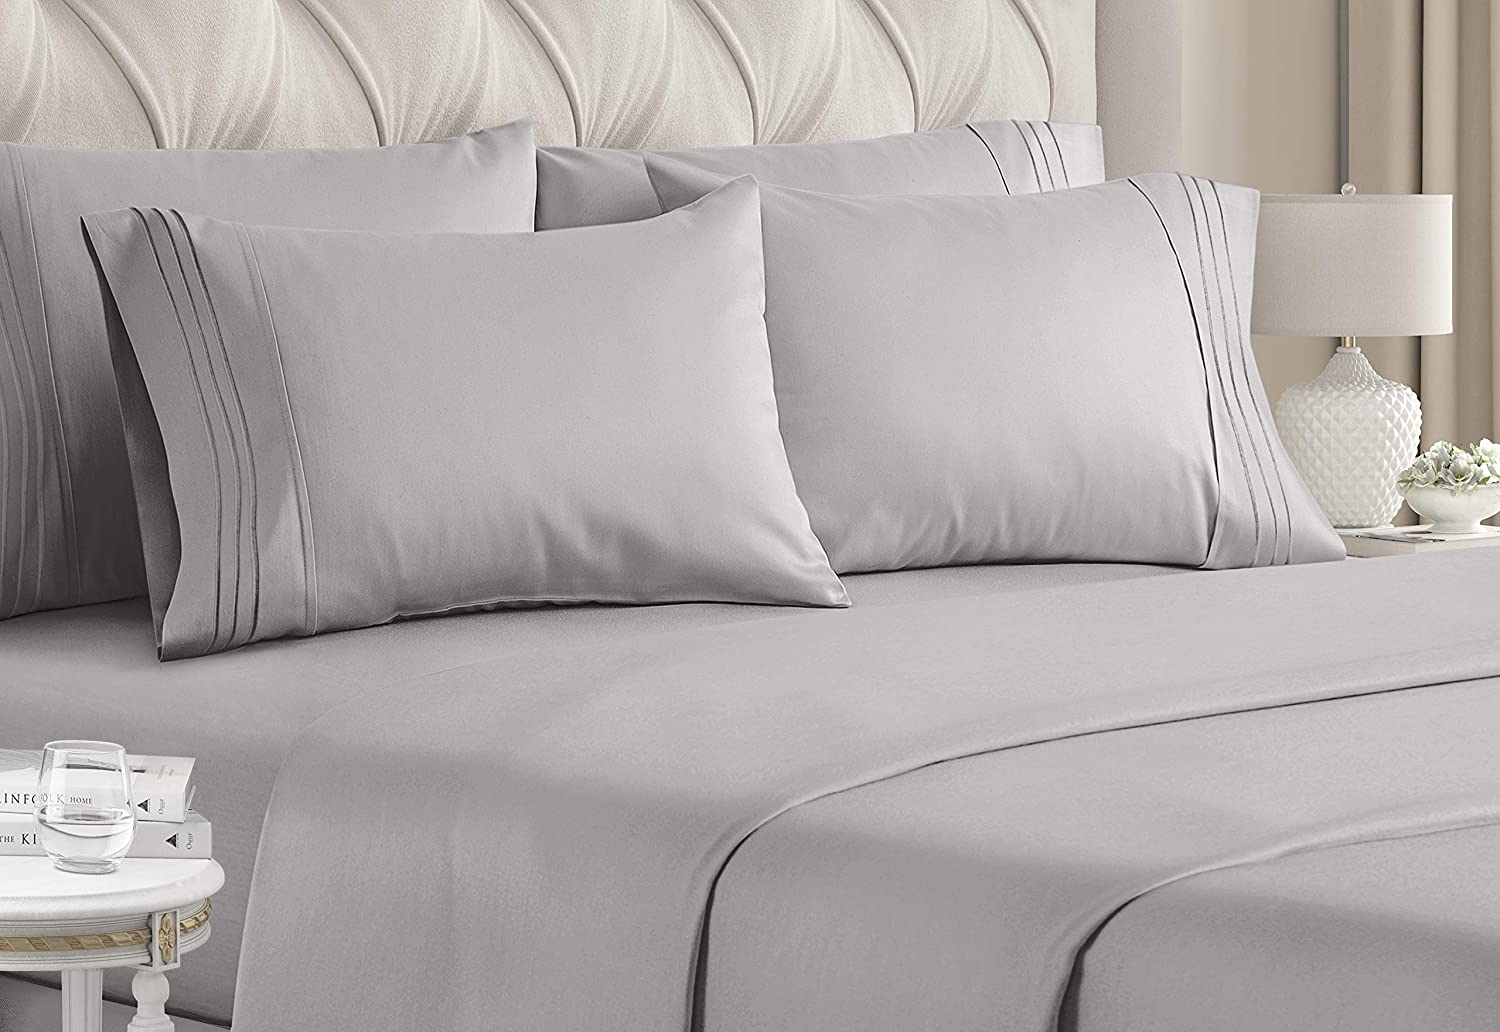 Queen Size San Francisco Mall Sheet Set Import - 6 Sheets E Bed Luxury Piece Hotel